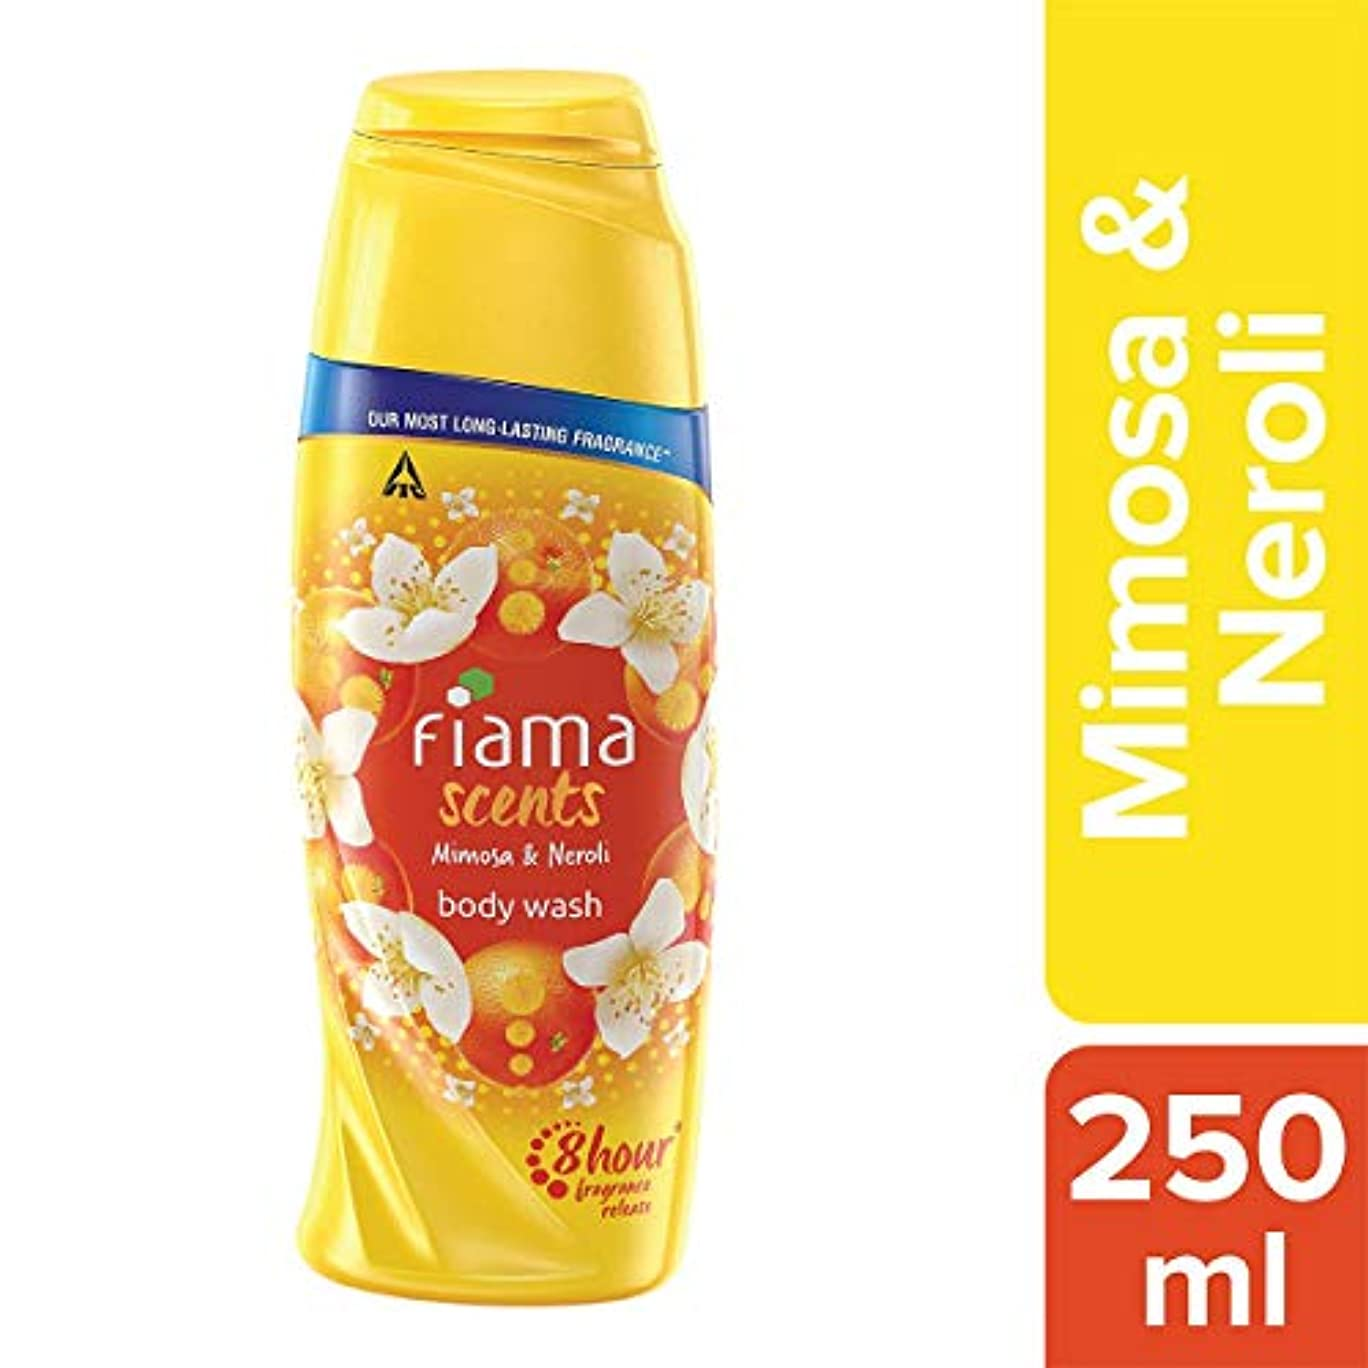 カートン指令スカートFiama Scents Mimosa and Neroli Body Wash, 250 ml